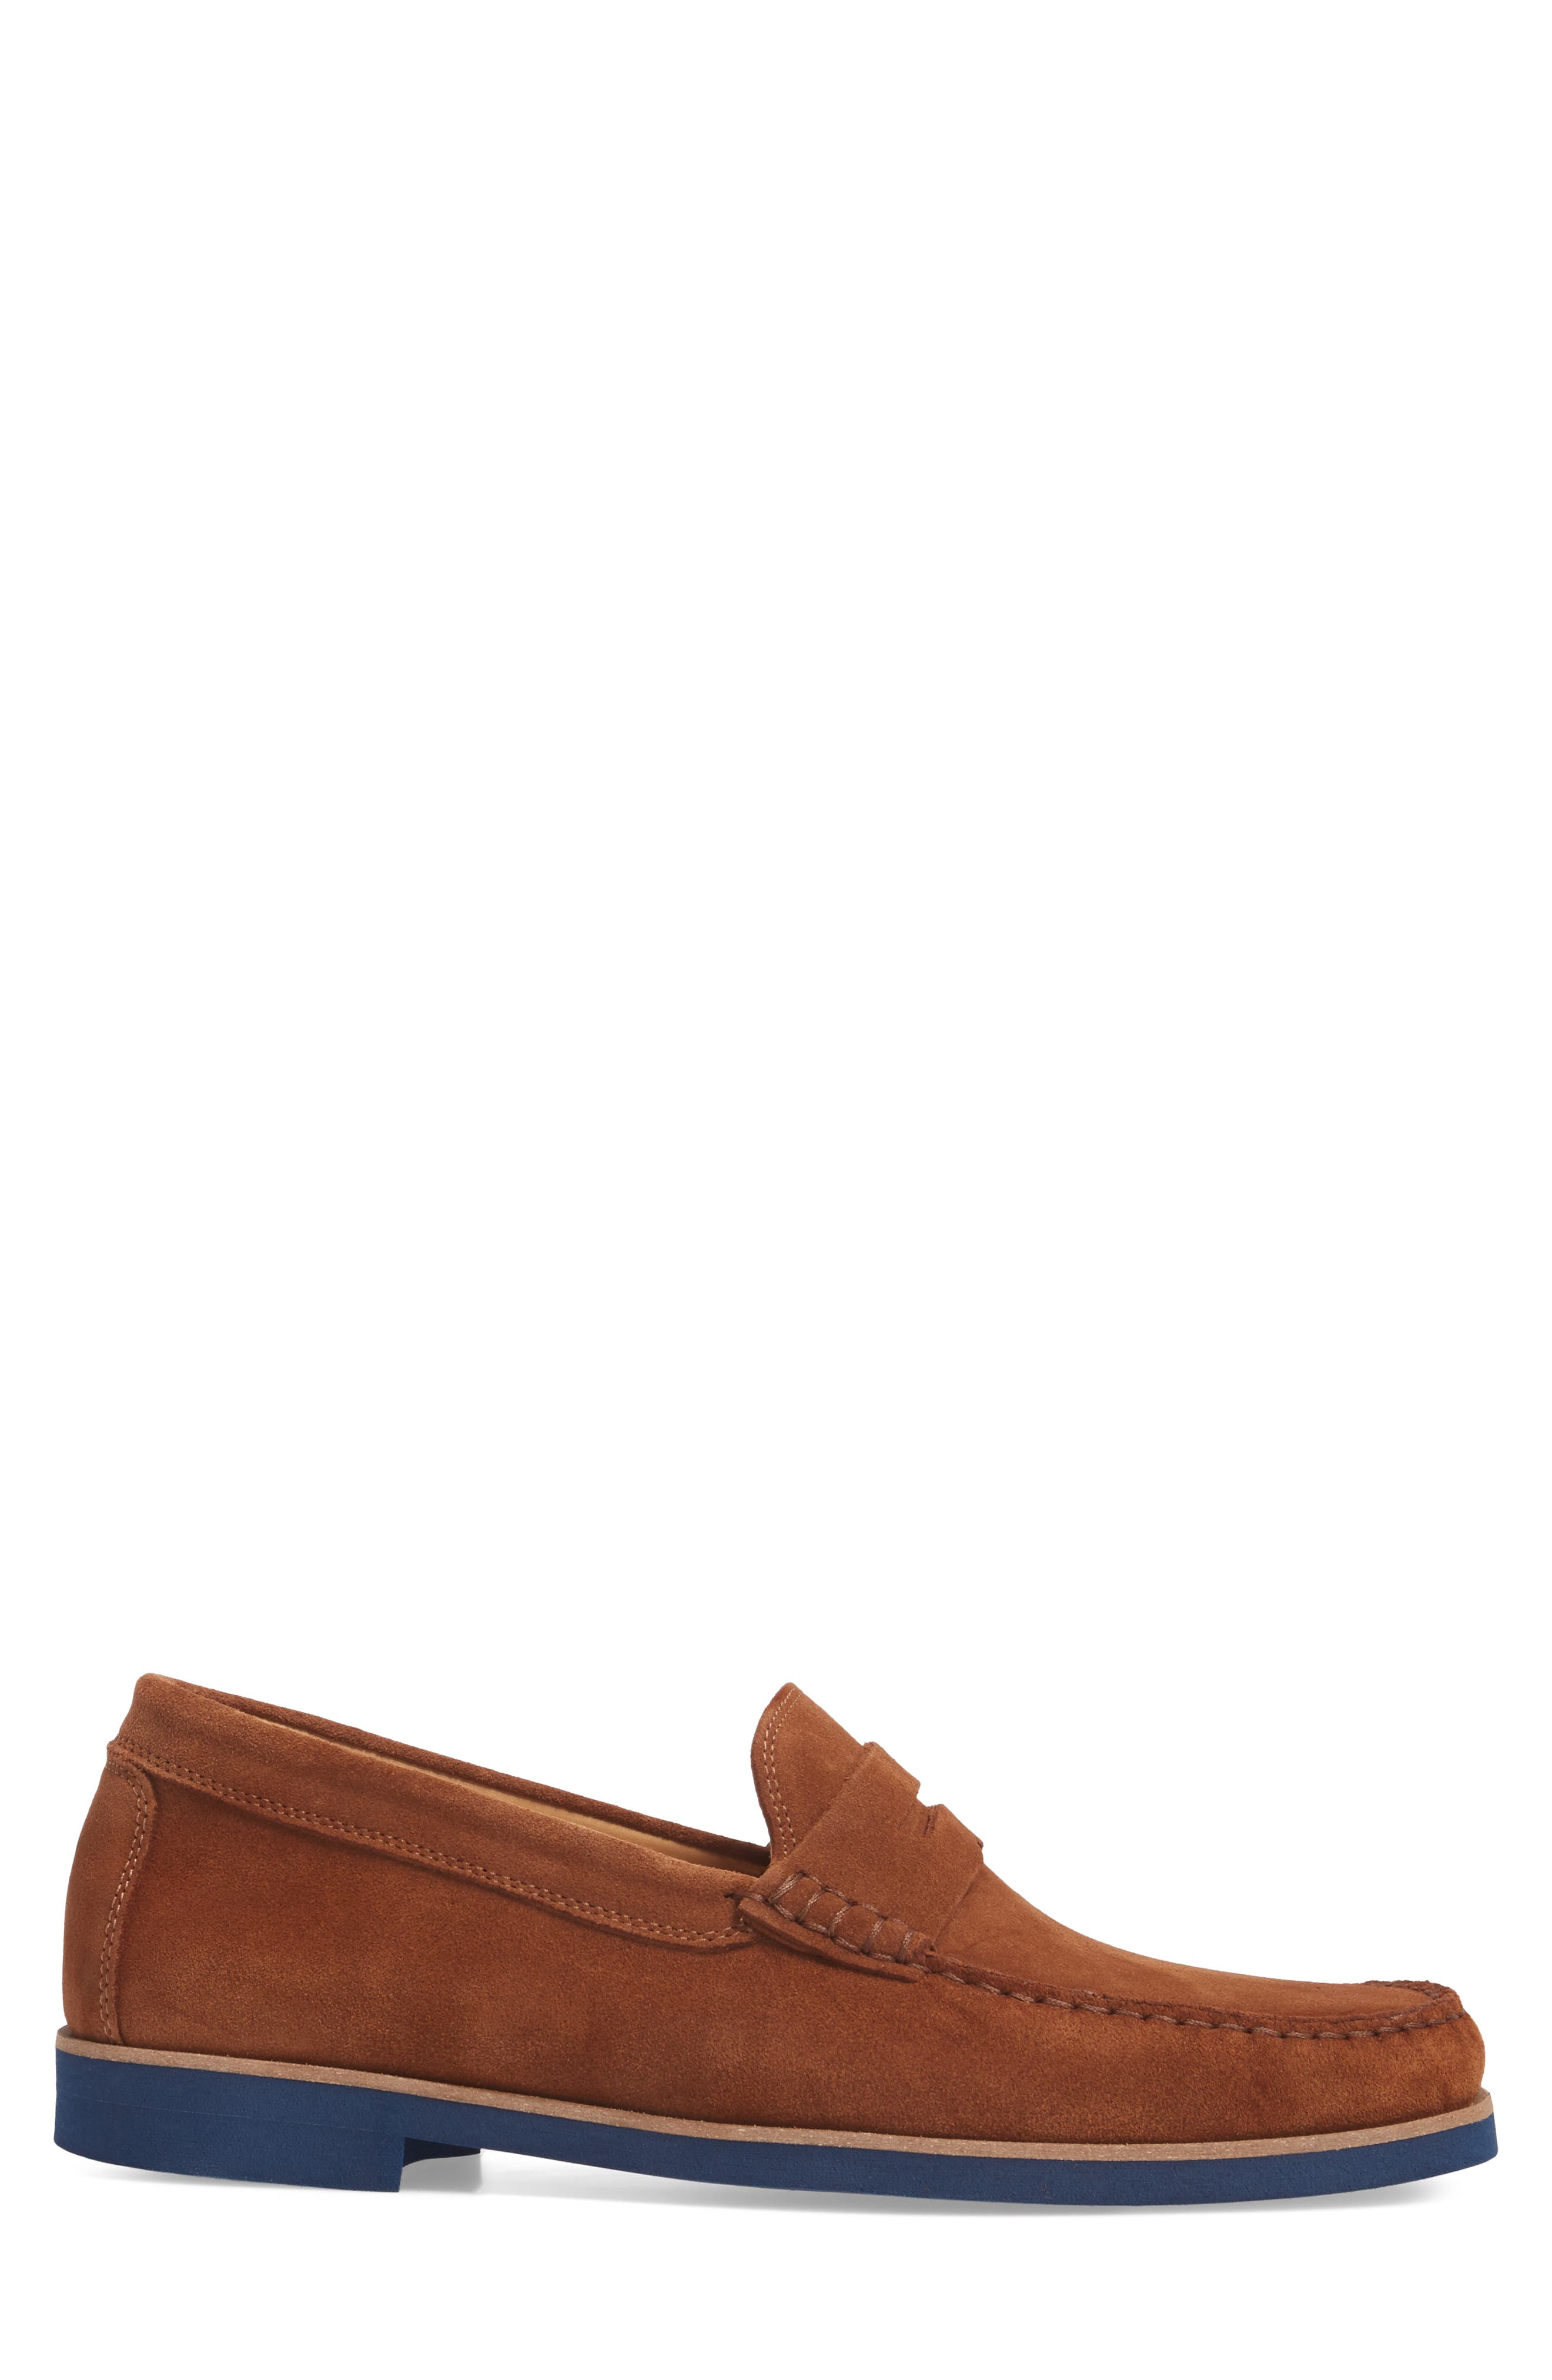 Kennedy Penny Loafer,                             Alternate thumbnail 3, color,                             MEDIUM BROWN SUEDE